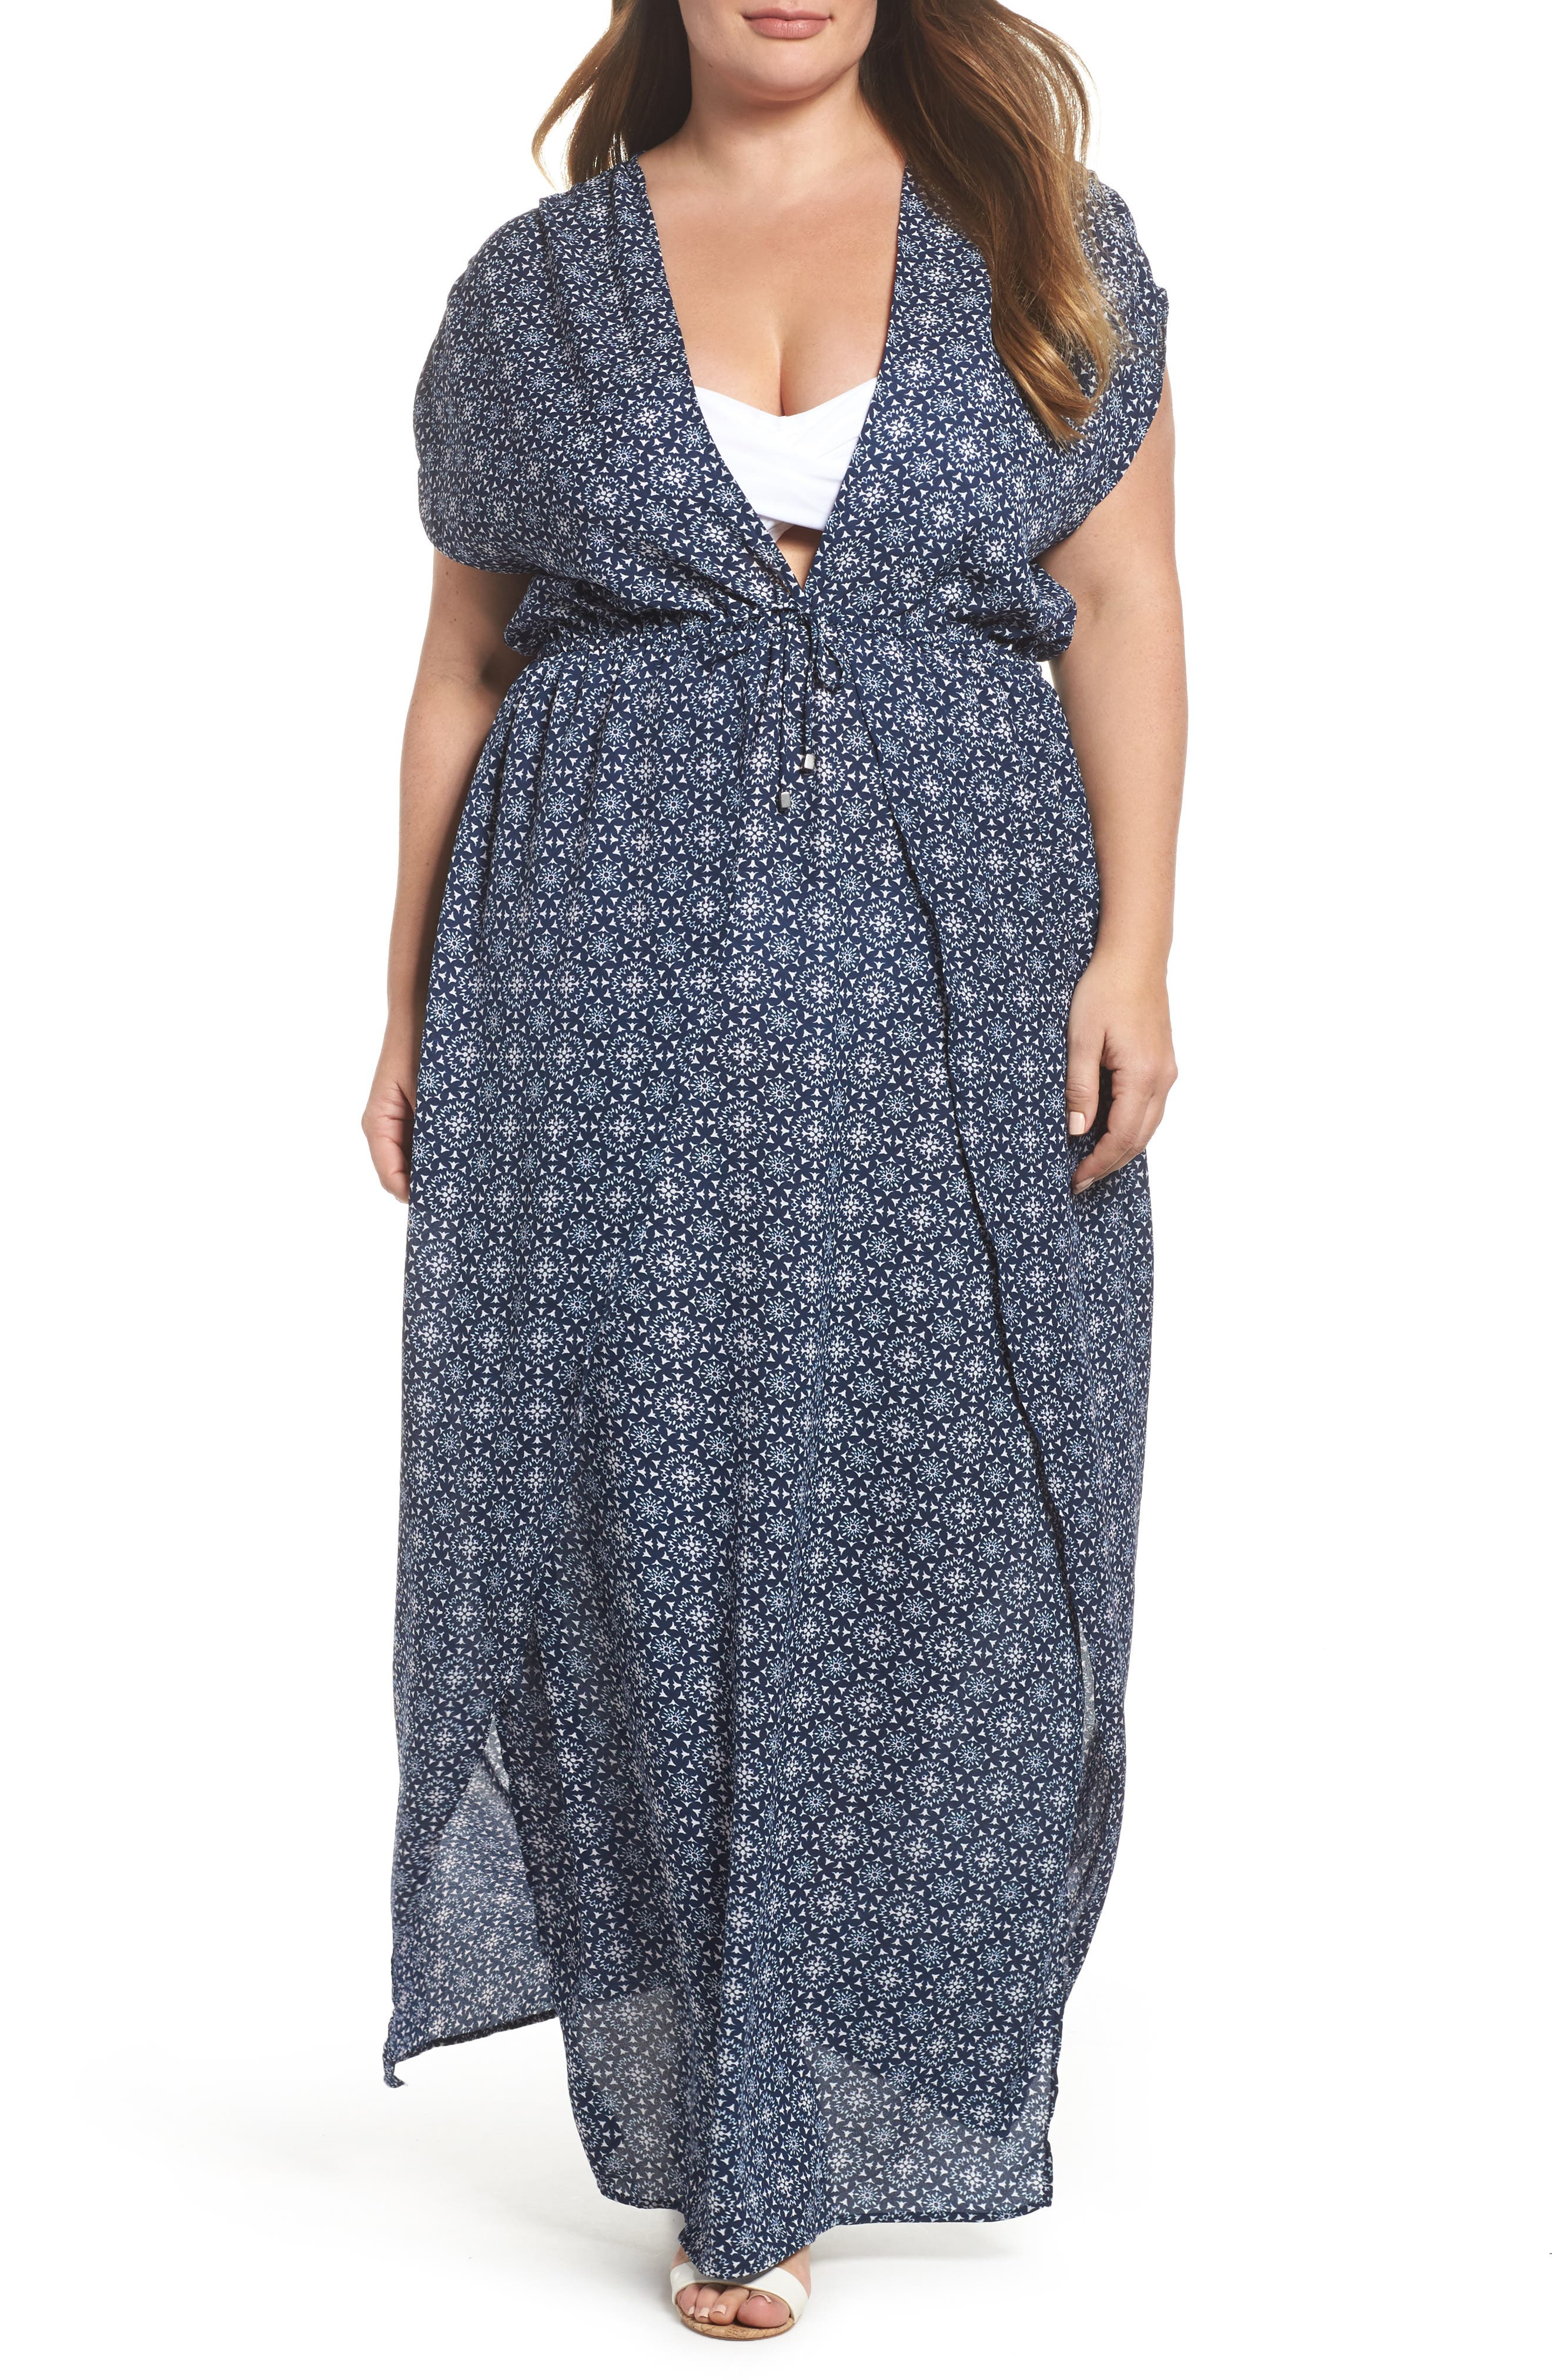 Main Image - Elan Print Cover-Up Maxi Dress (Plus Size)